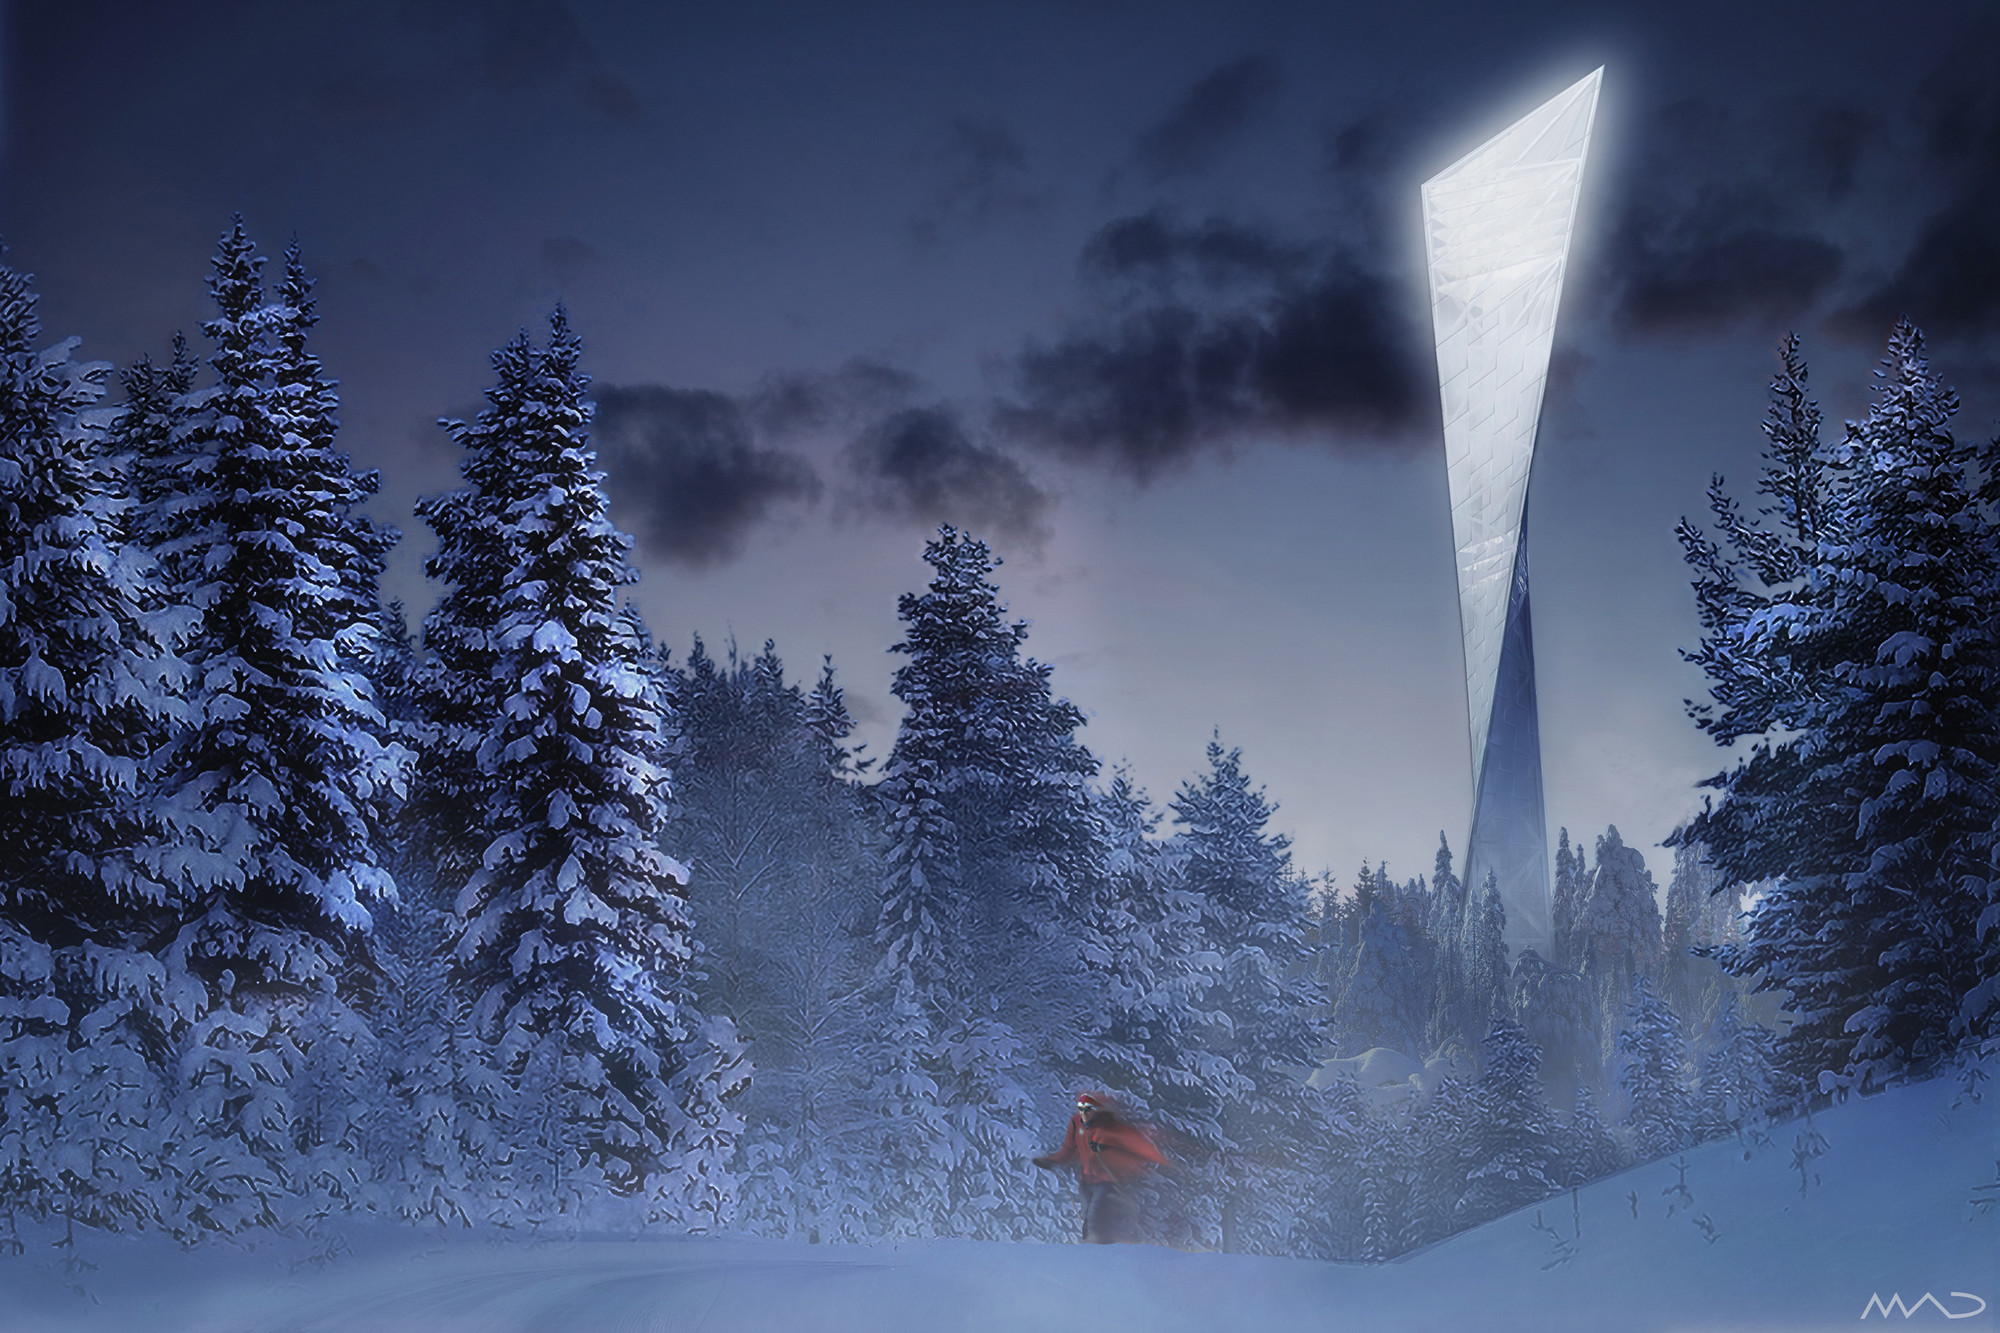 New Tryvann Tower Proposal / MAD Arkitekter, Courtesy of MAD Arkitekter